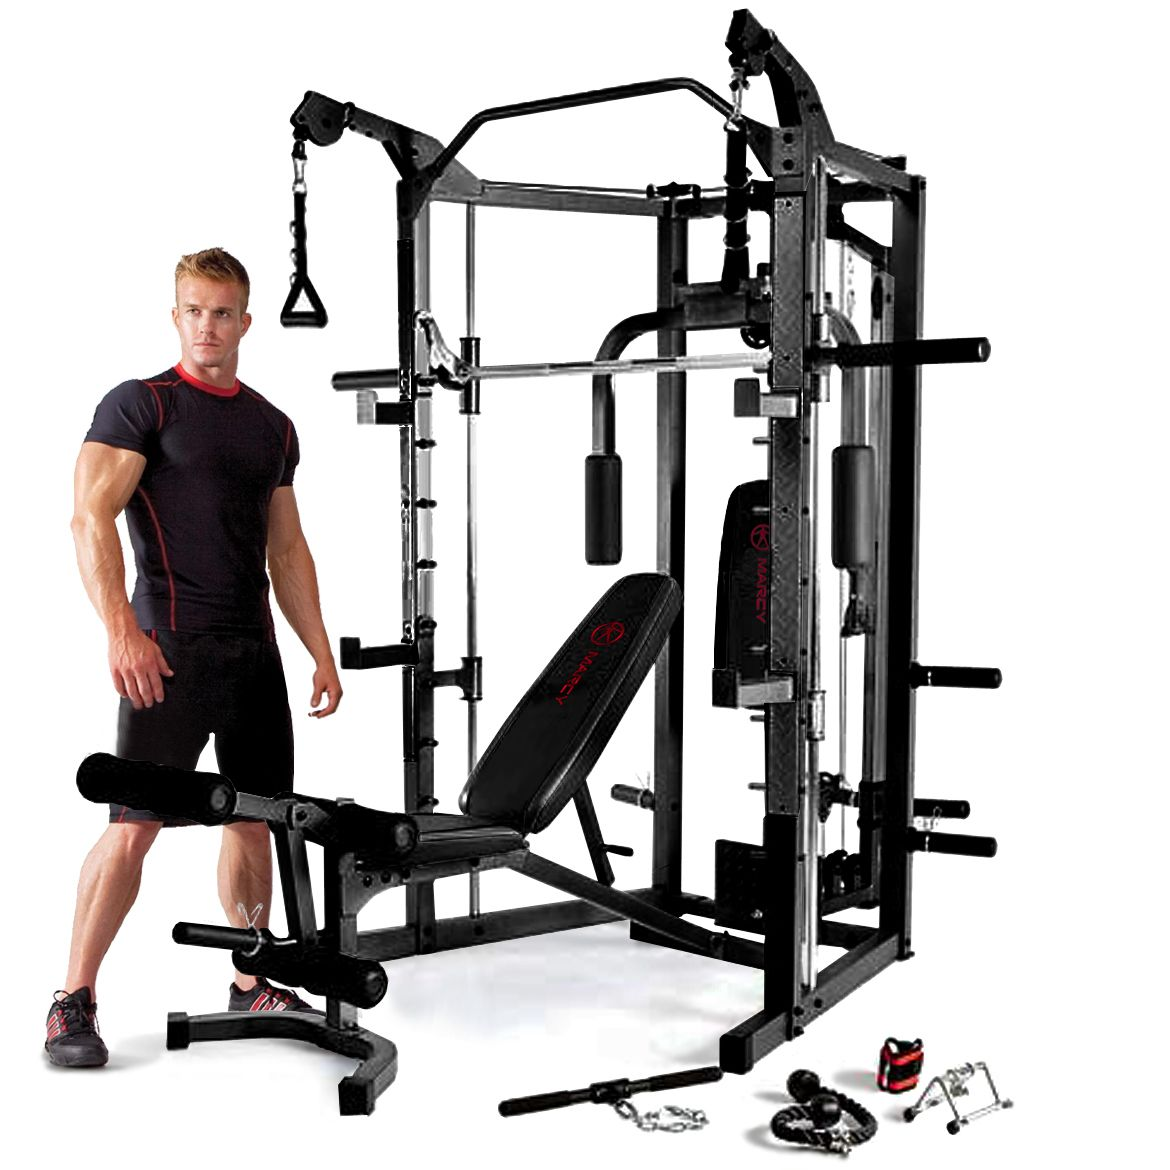 Marcy eclipse rs deluxe smith machine home gym with